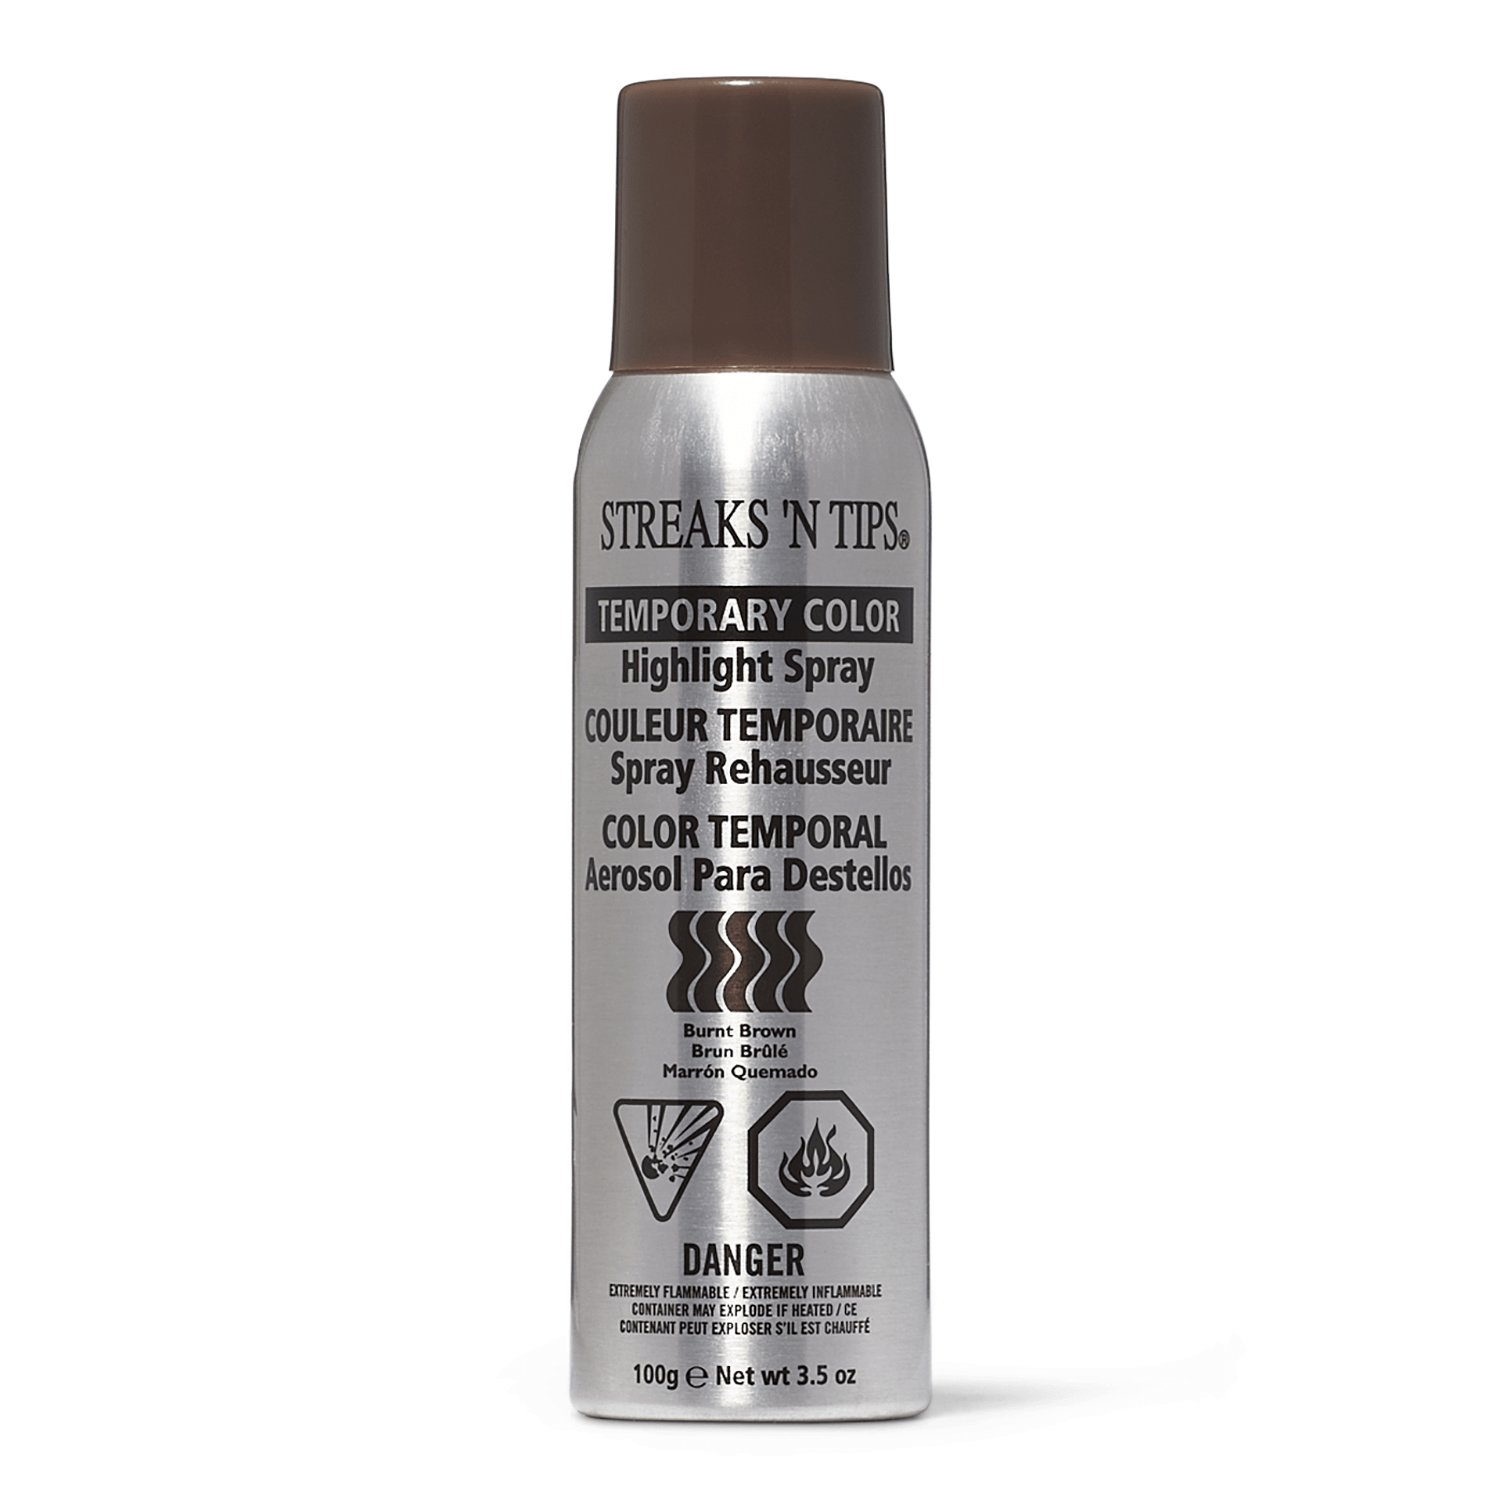 The Best Burnt Brown Temporary Highlight Color Spray By Streaks N Tips Temporary Hair Color Root Pictures